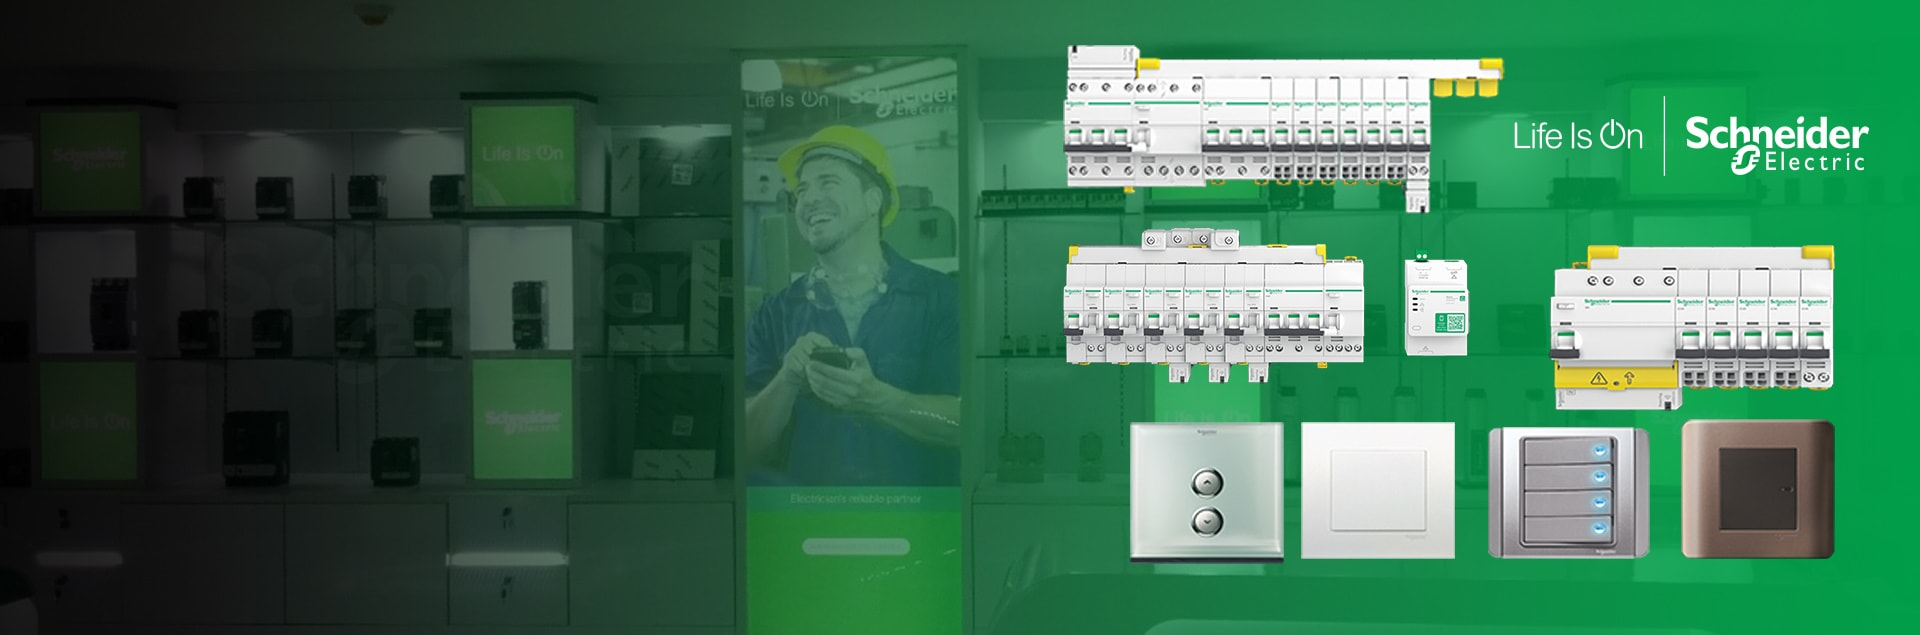 Schneider Electric Equipment in Myanmar